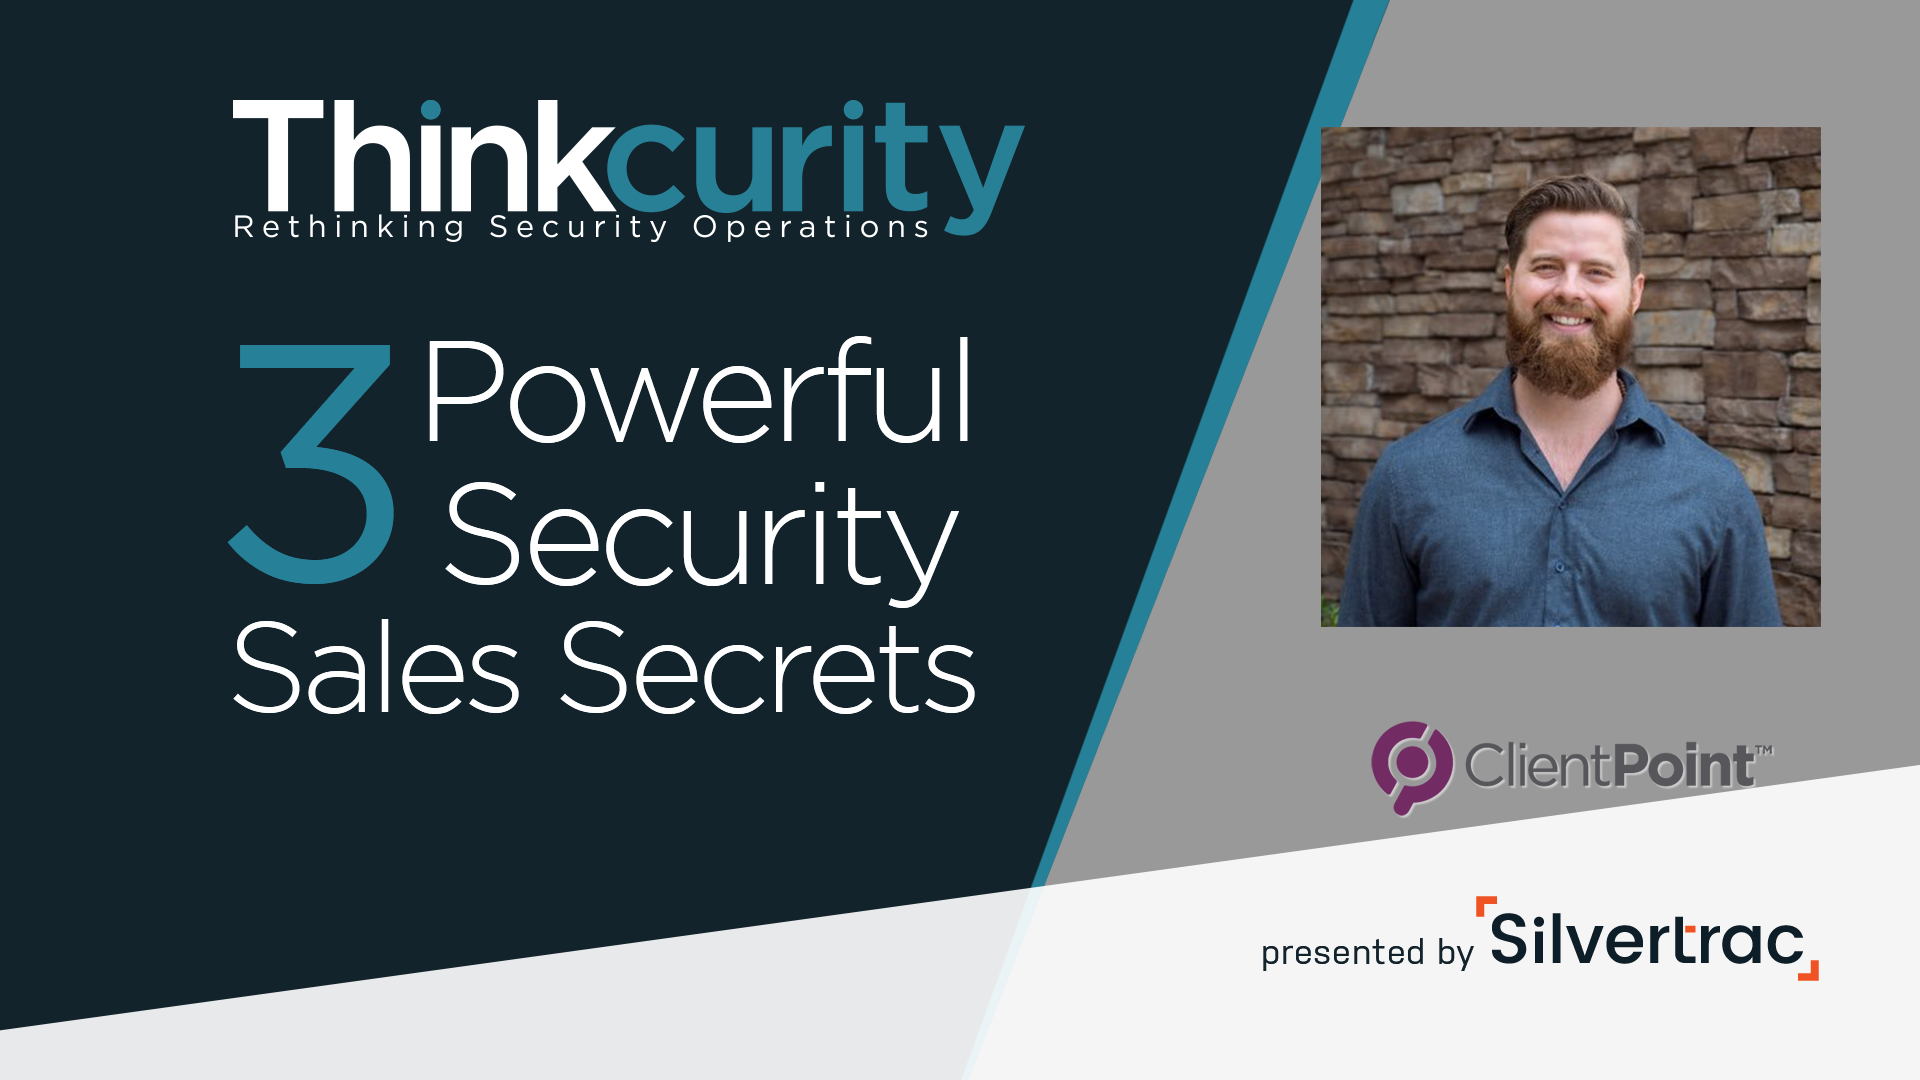 Winning the Modern Security Sale: 3 Powerful Sales Secrets